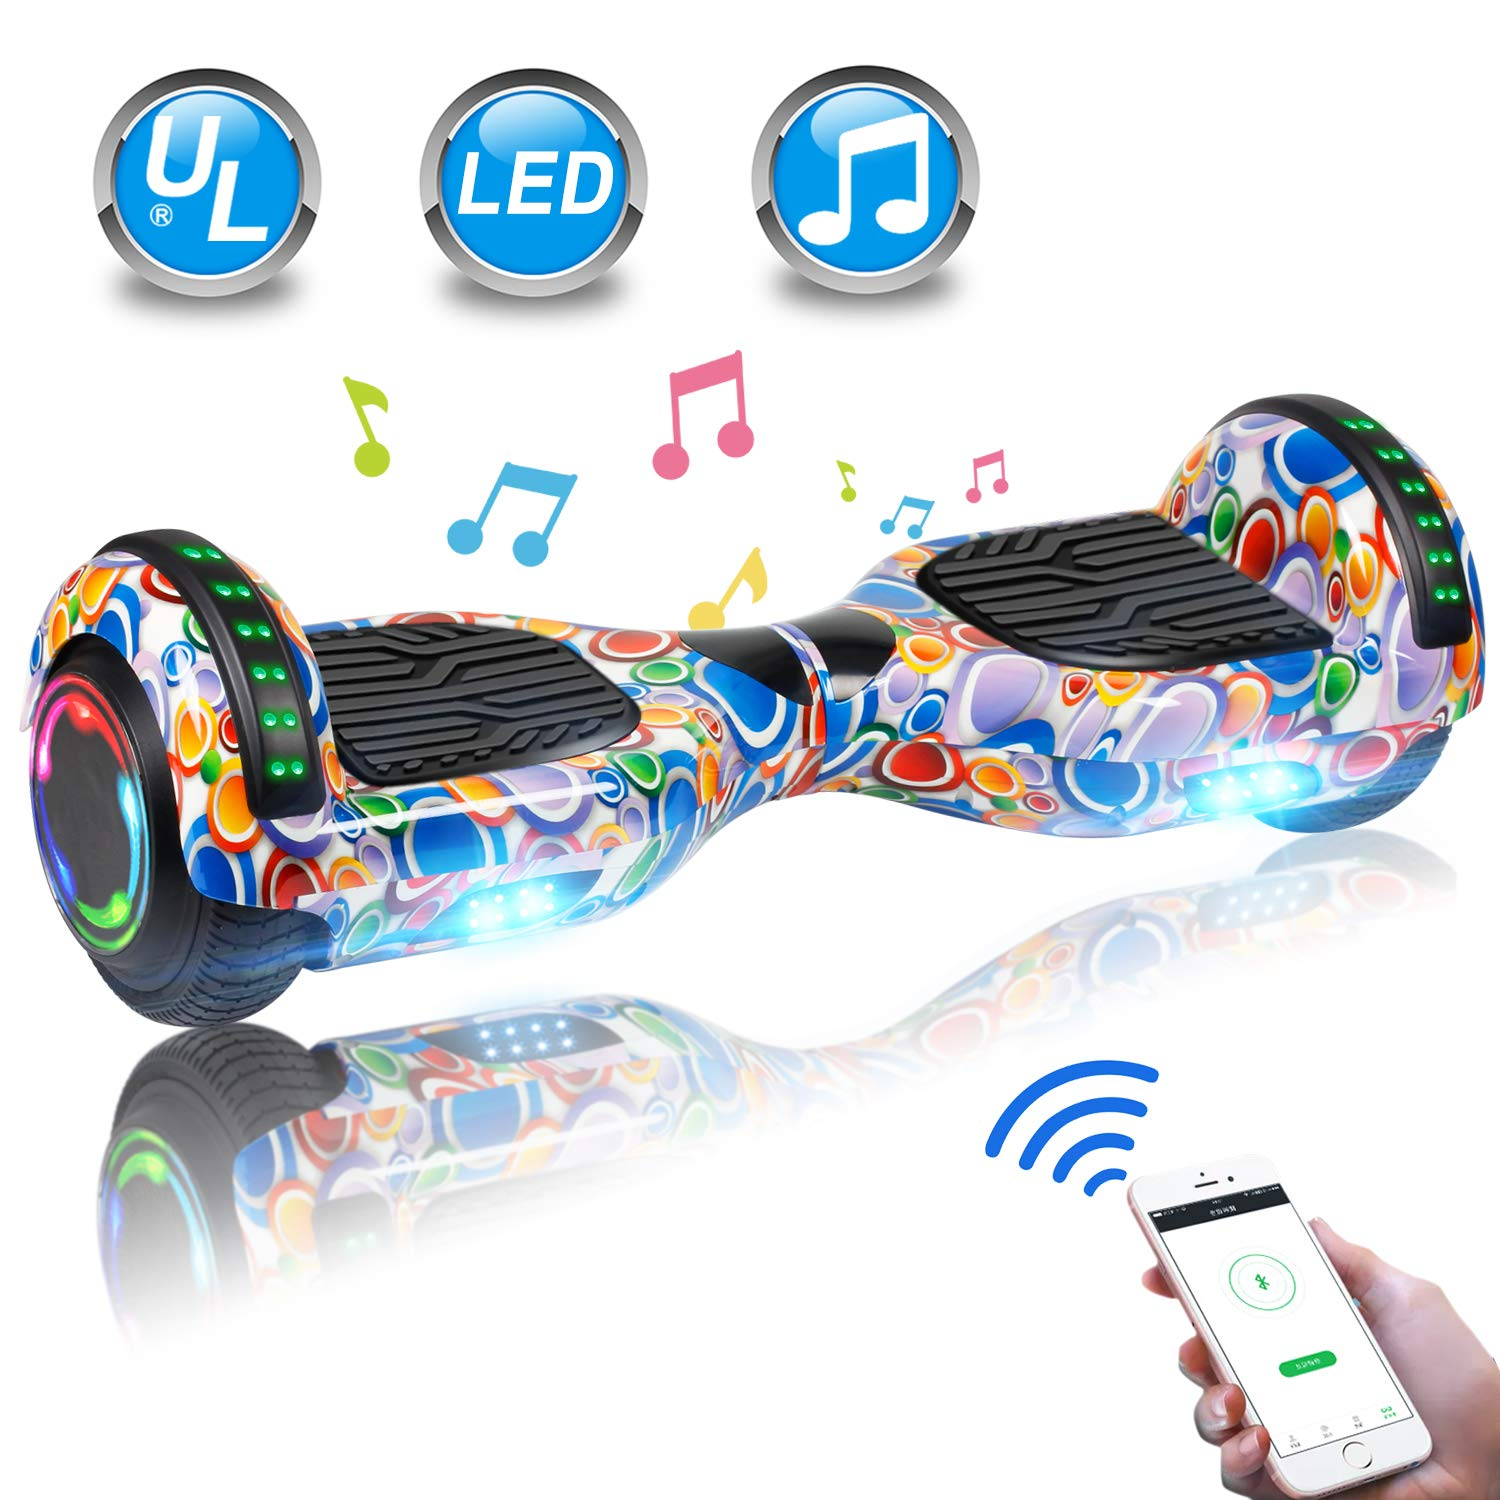 UNI-SUN 6.5 Hoverboard for Kids, Two Wheel Electric Scooter, Self Balancing Hoverboard with Bluetooth and LED Lights for Adults, UL 2272 Certified Hover Board Colorful Bubbles